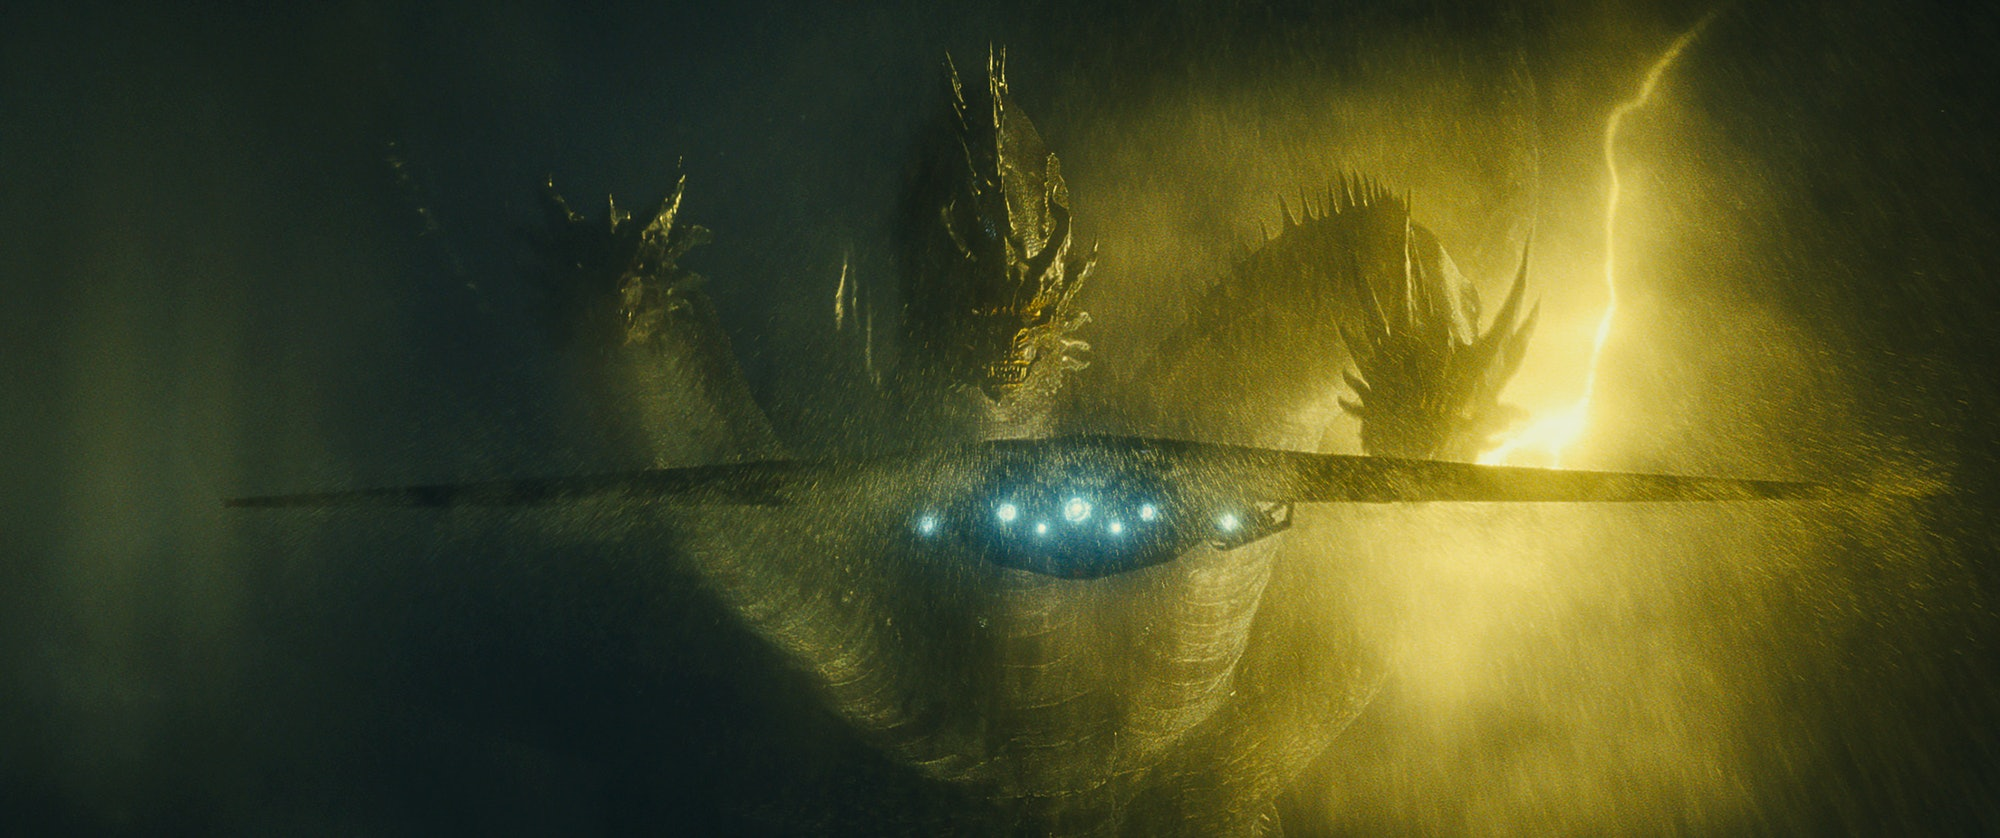 godzilla king of the monsters spoilers post credits after end guide